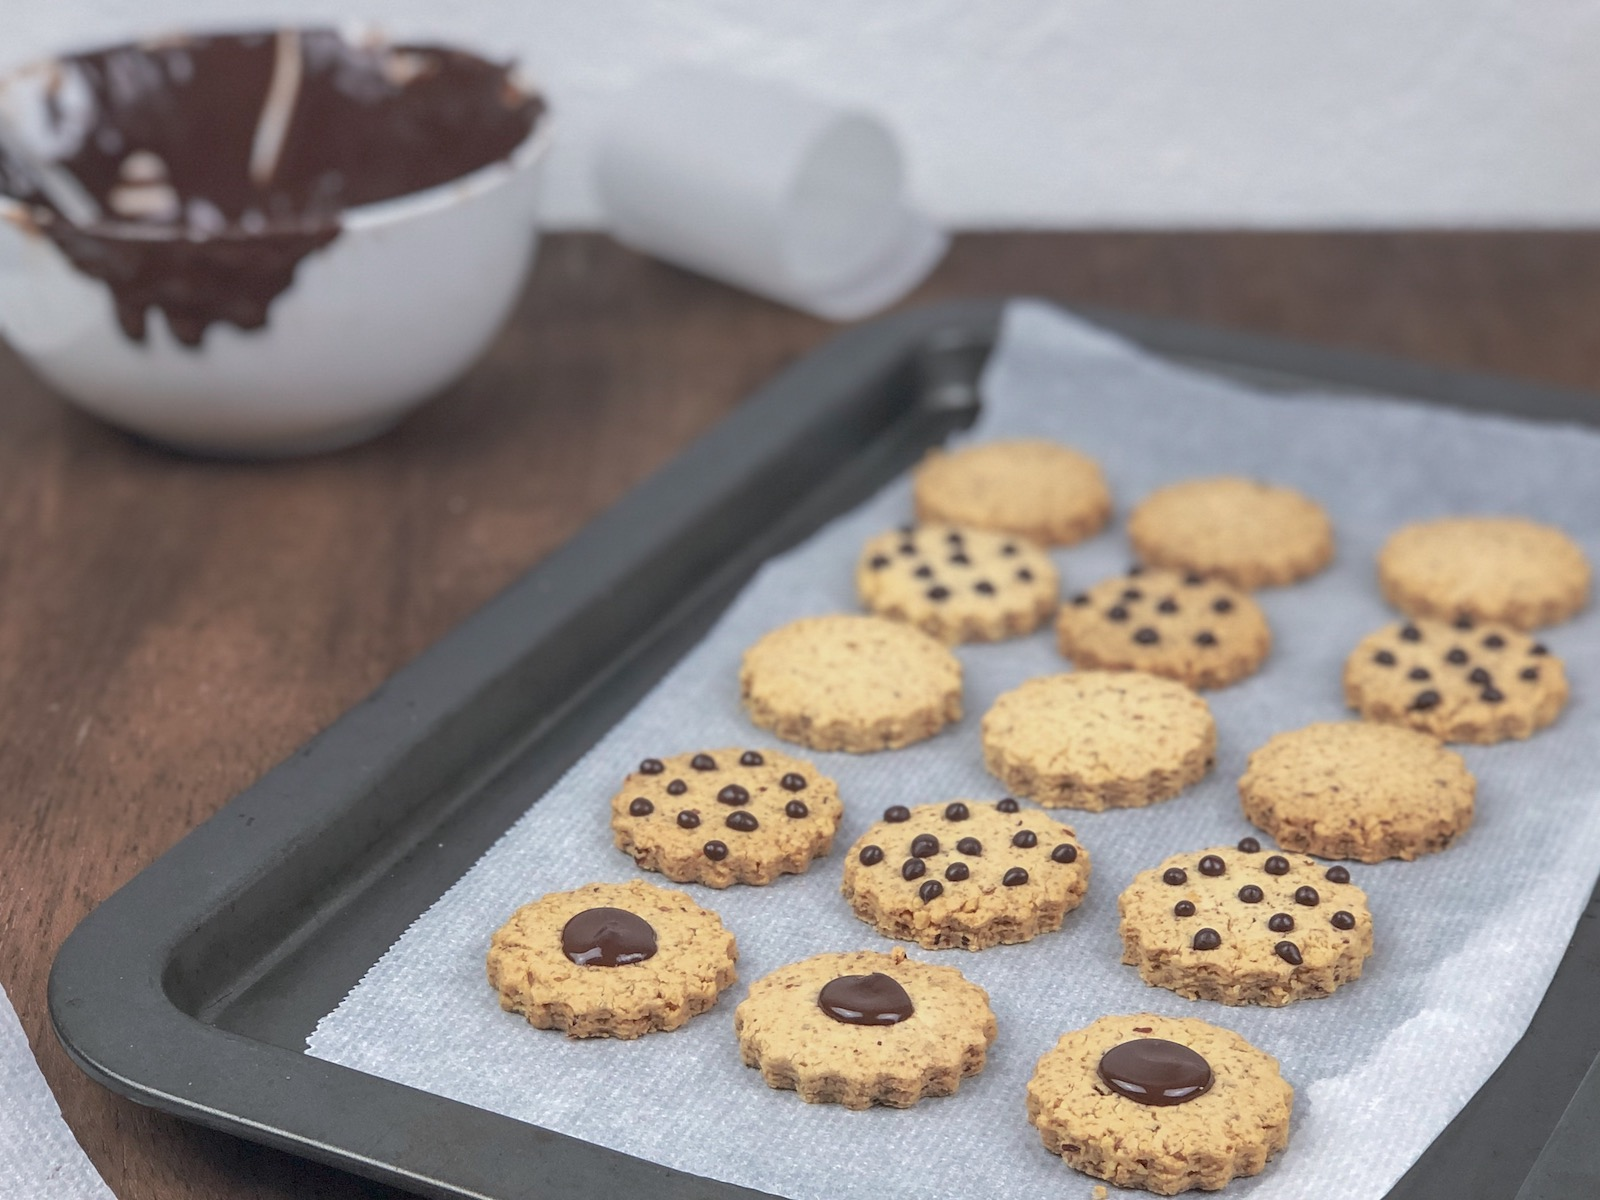 Shortbread almond biscuits